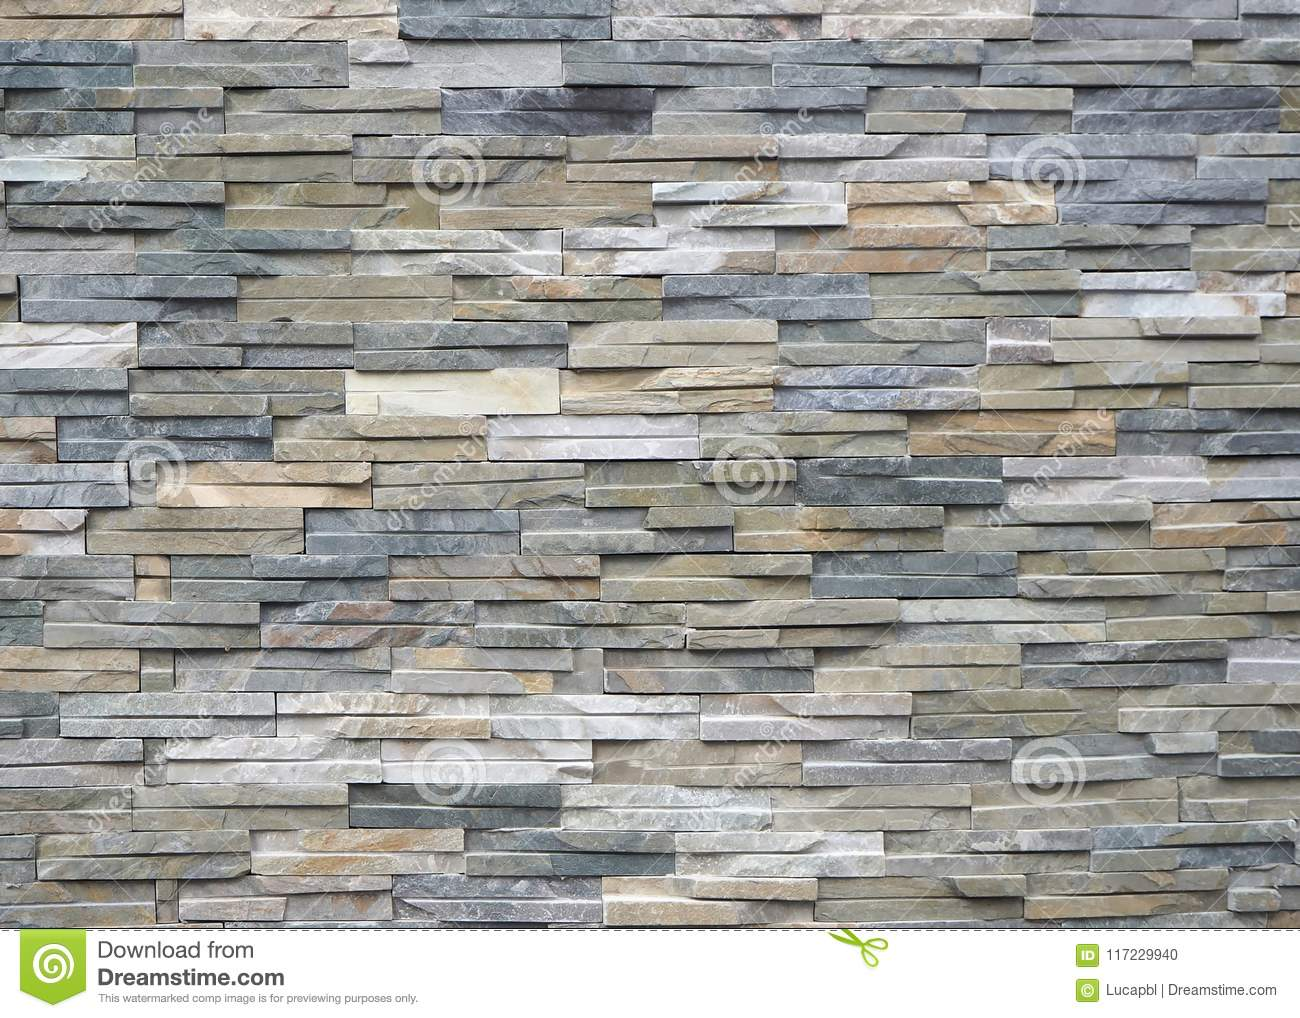 Download Quartzite Natural Stone Cladding For External Walls Background And Texture Stock Photo